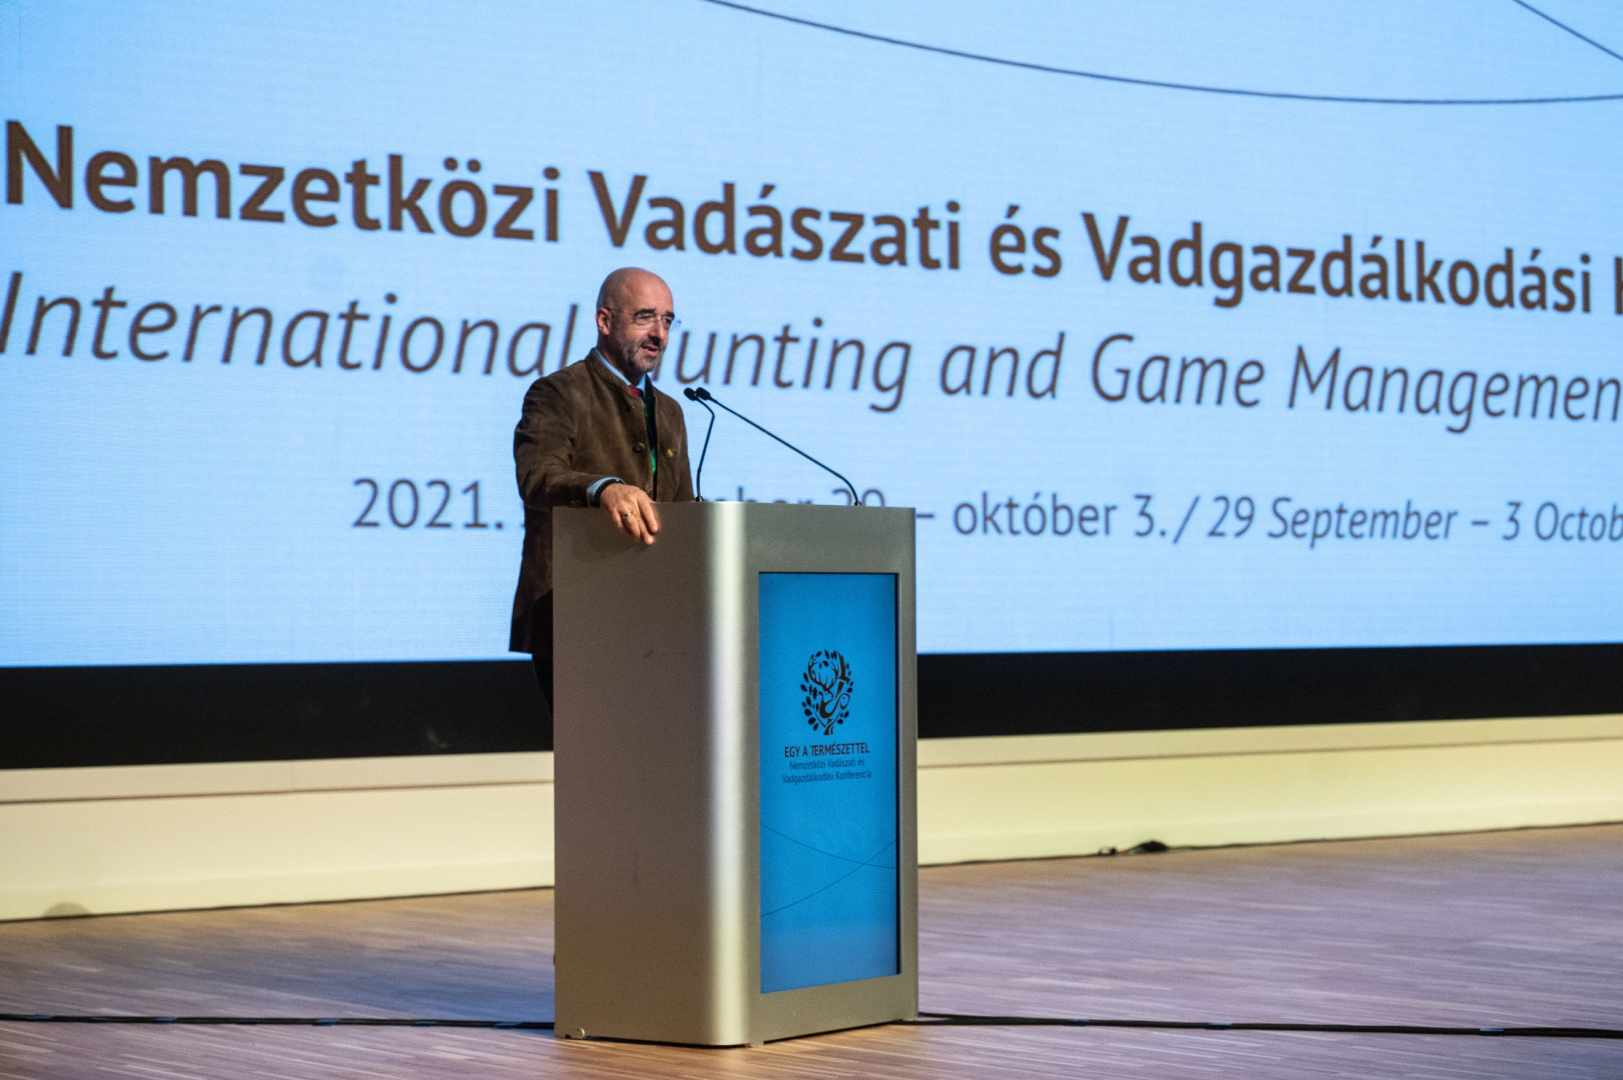 Professional knowledge available in Hungary to be made accessible for other countries as well